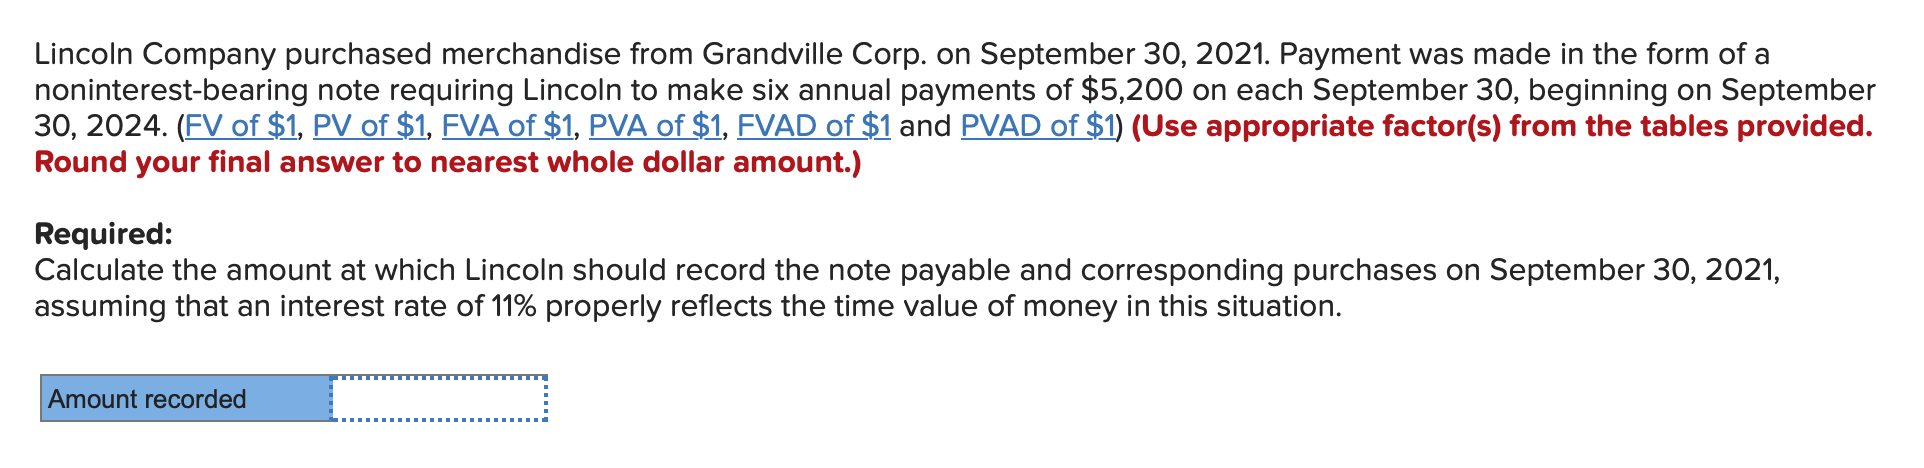 Lincoln Company purchased merchandise from Grandville Corp. on September 30, 2021. Payment was made in the form of a noninter